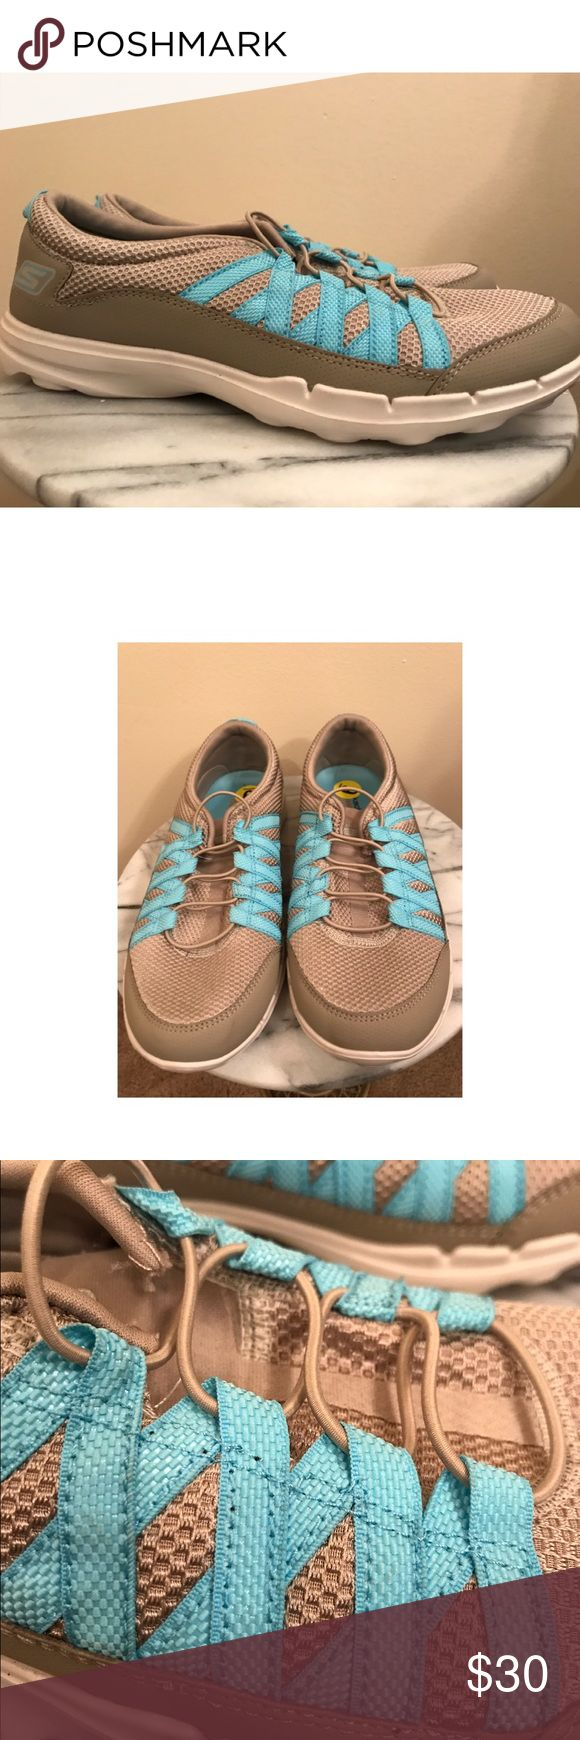 Skechers On The Go athletic shoe 9 Almost new grey and turquoise Skechers In The Go lightweight athletic shoe size 9. Skechers Shoes Sneakers